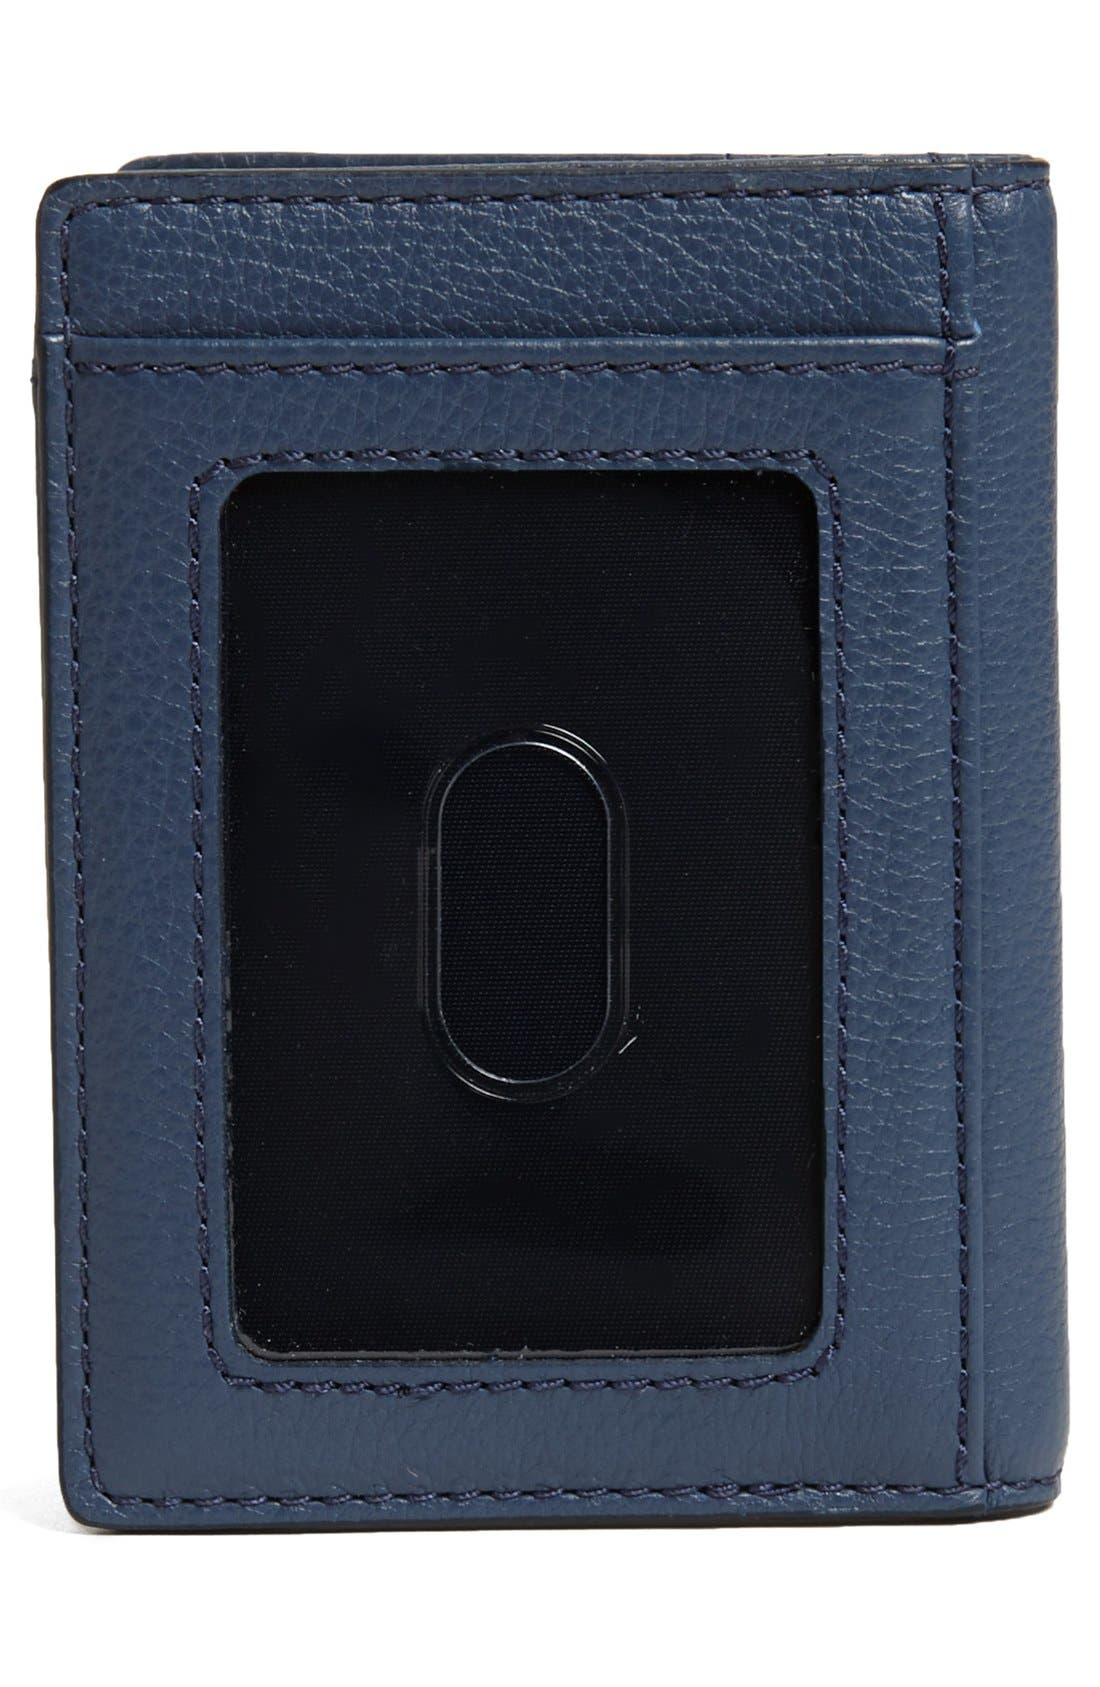 Alternate Image 3  - Tory Burch 'Amanda' Leather Card Case